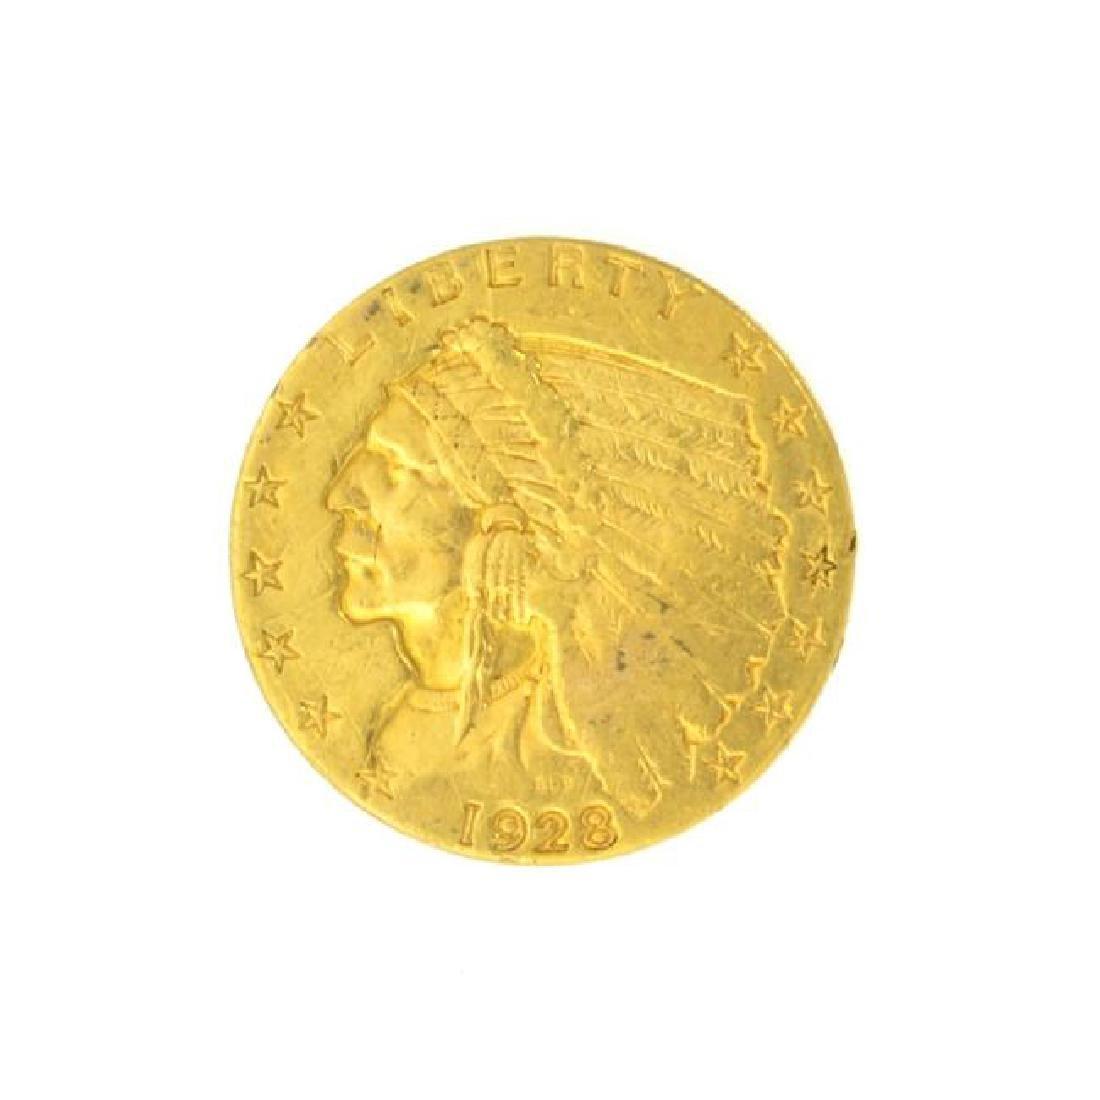 1928 $2.50 U.S. Indian Head Gold Coin - Great